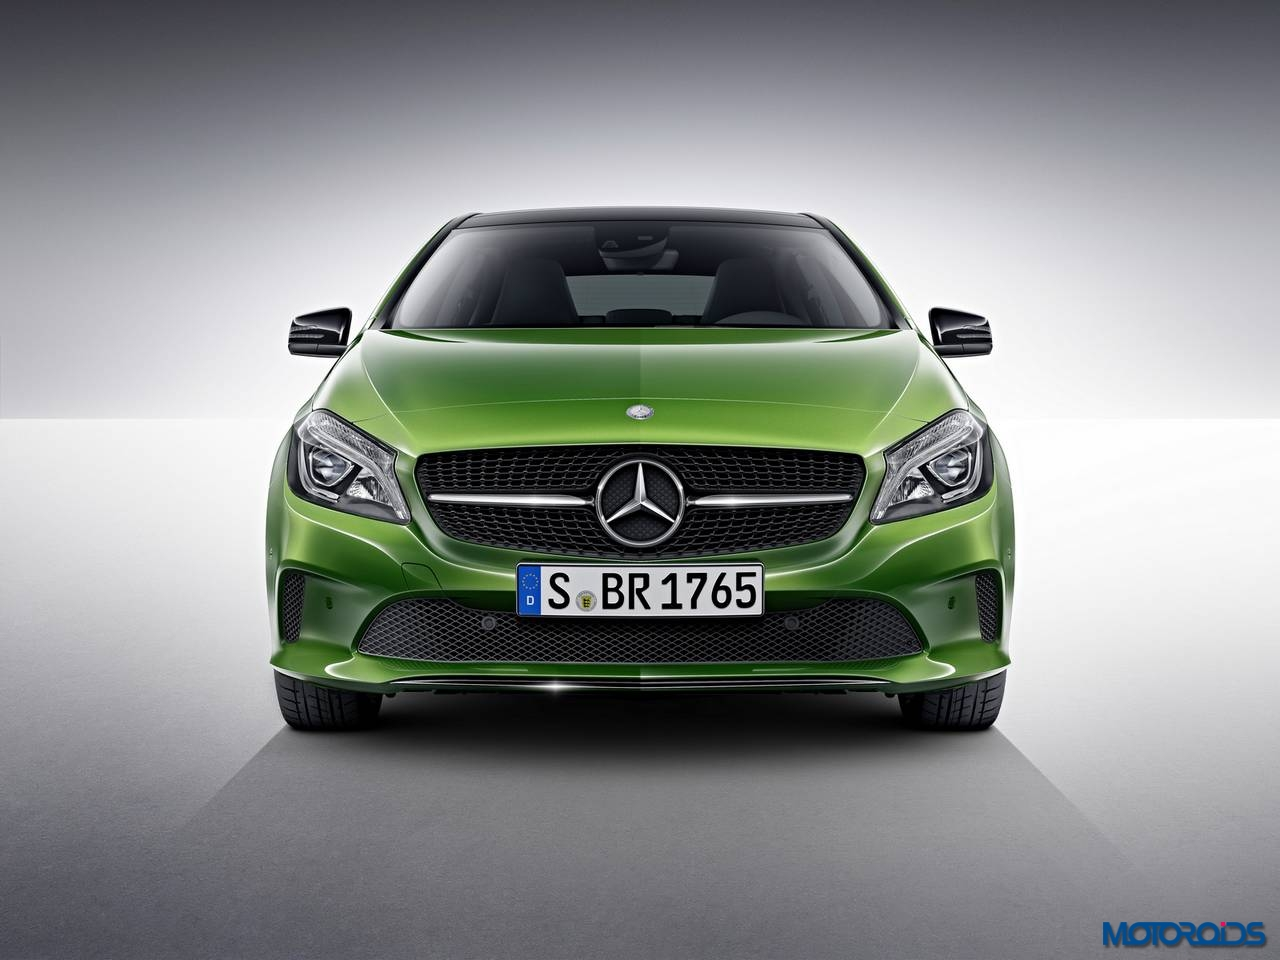 2016 Mercedes-Benz A-Class facelift set to launch in India